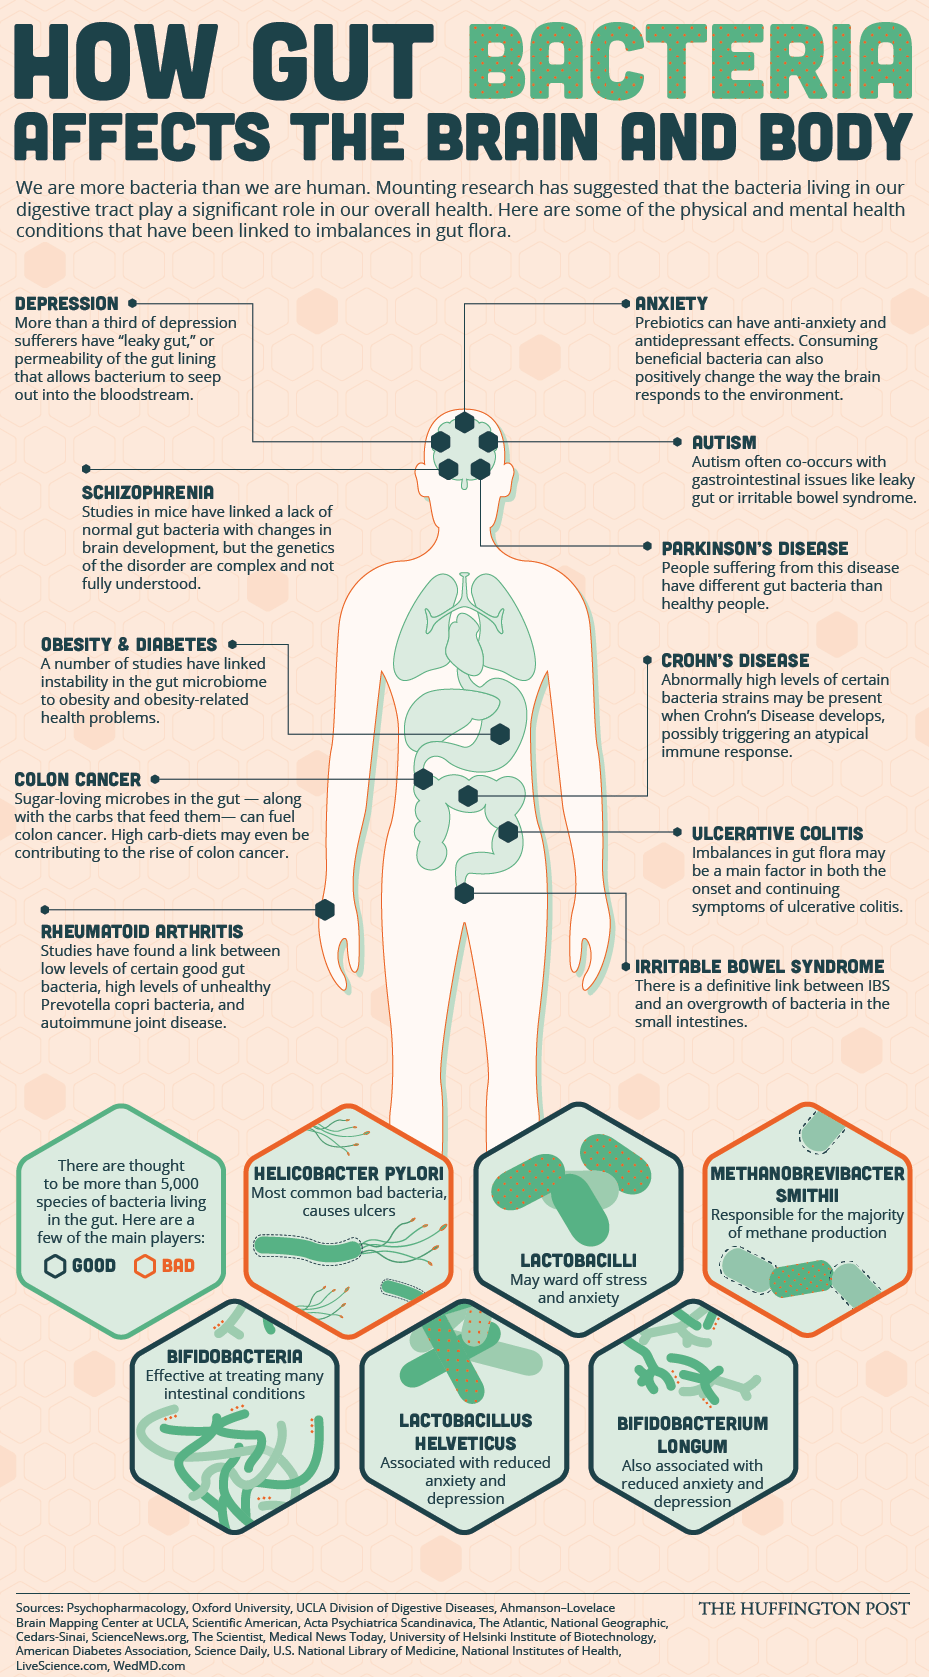 Infographic by Jan Diehm for The Huffington Post.